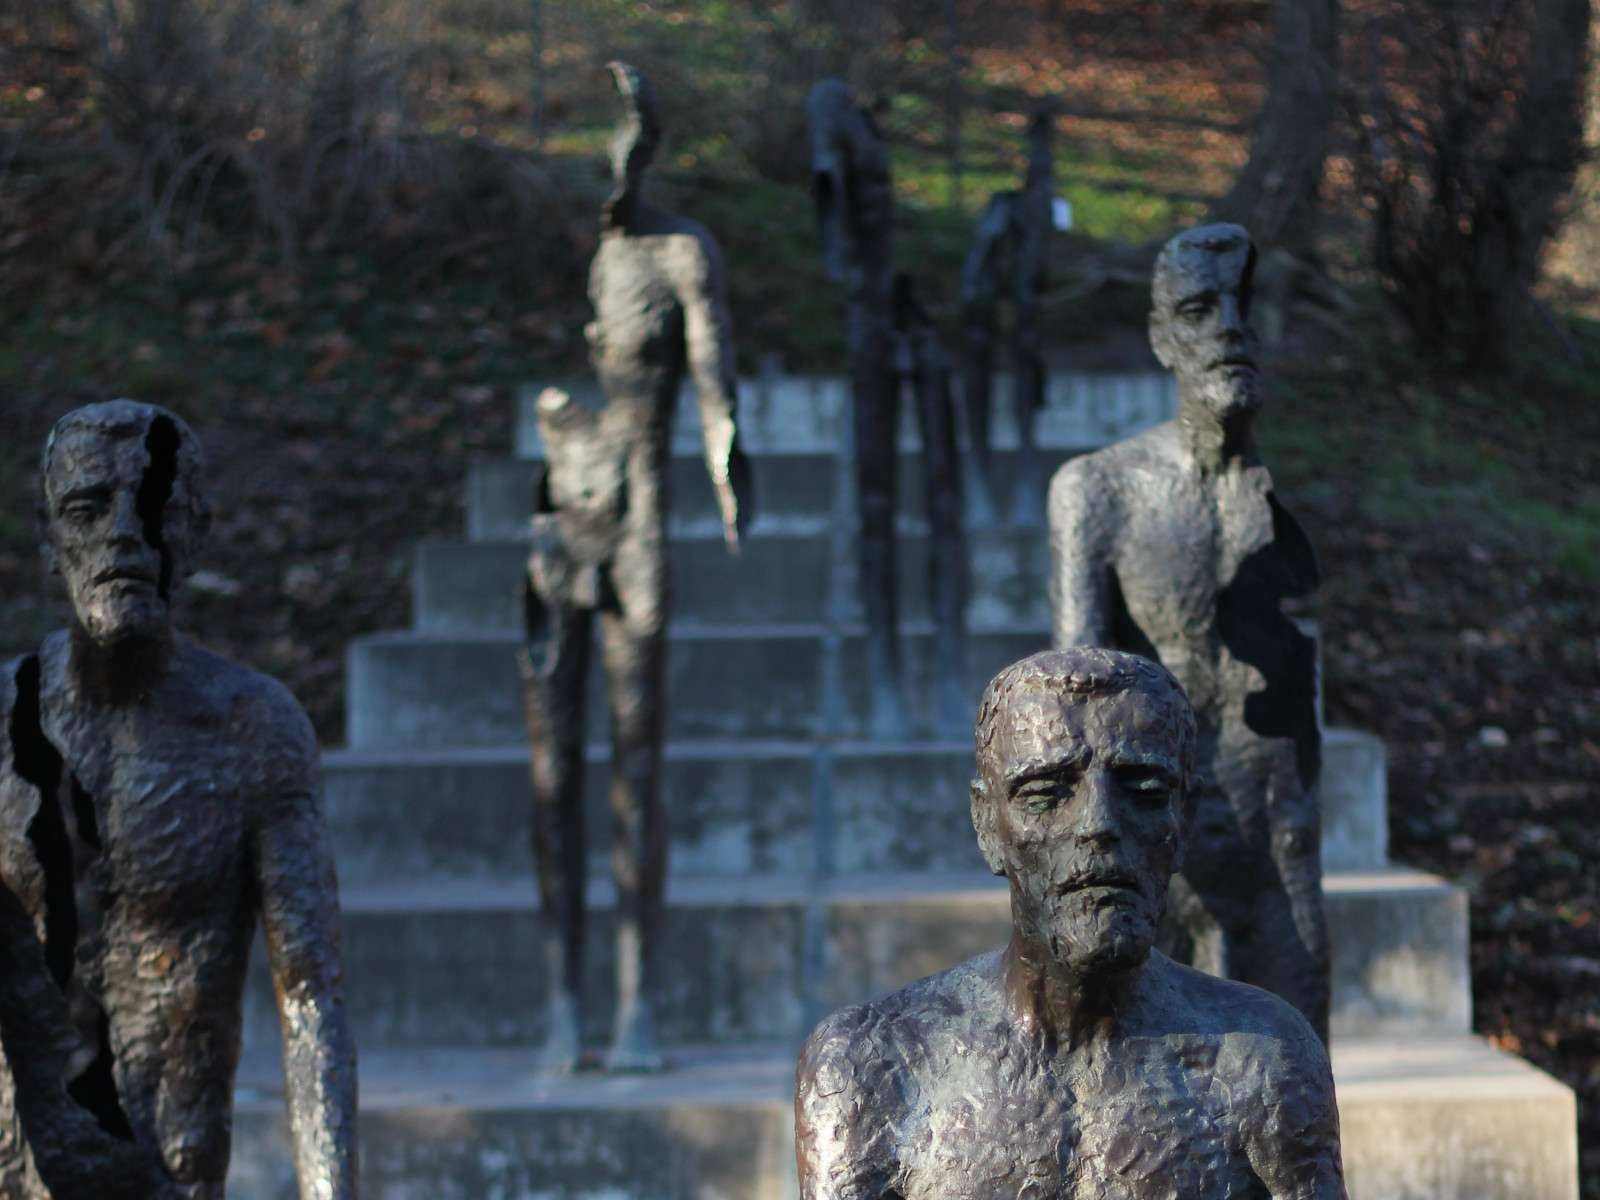 Gay travel to Prague - make sure you see the striking memorial to the victims of Communism during your trip.